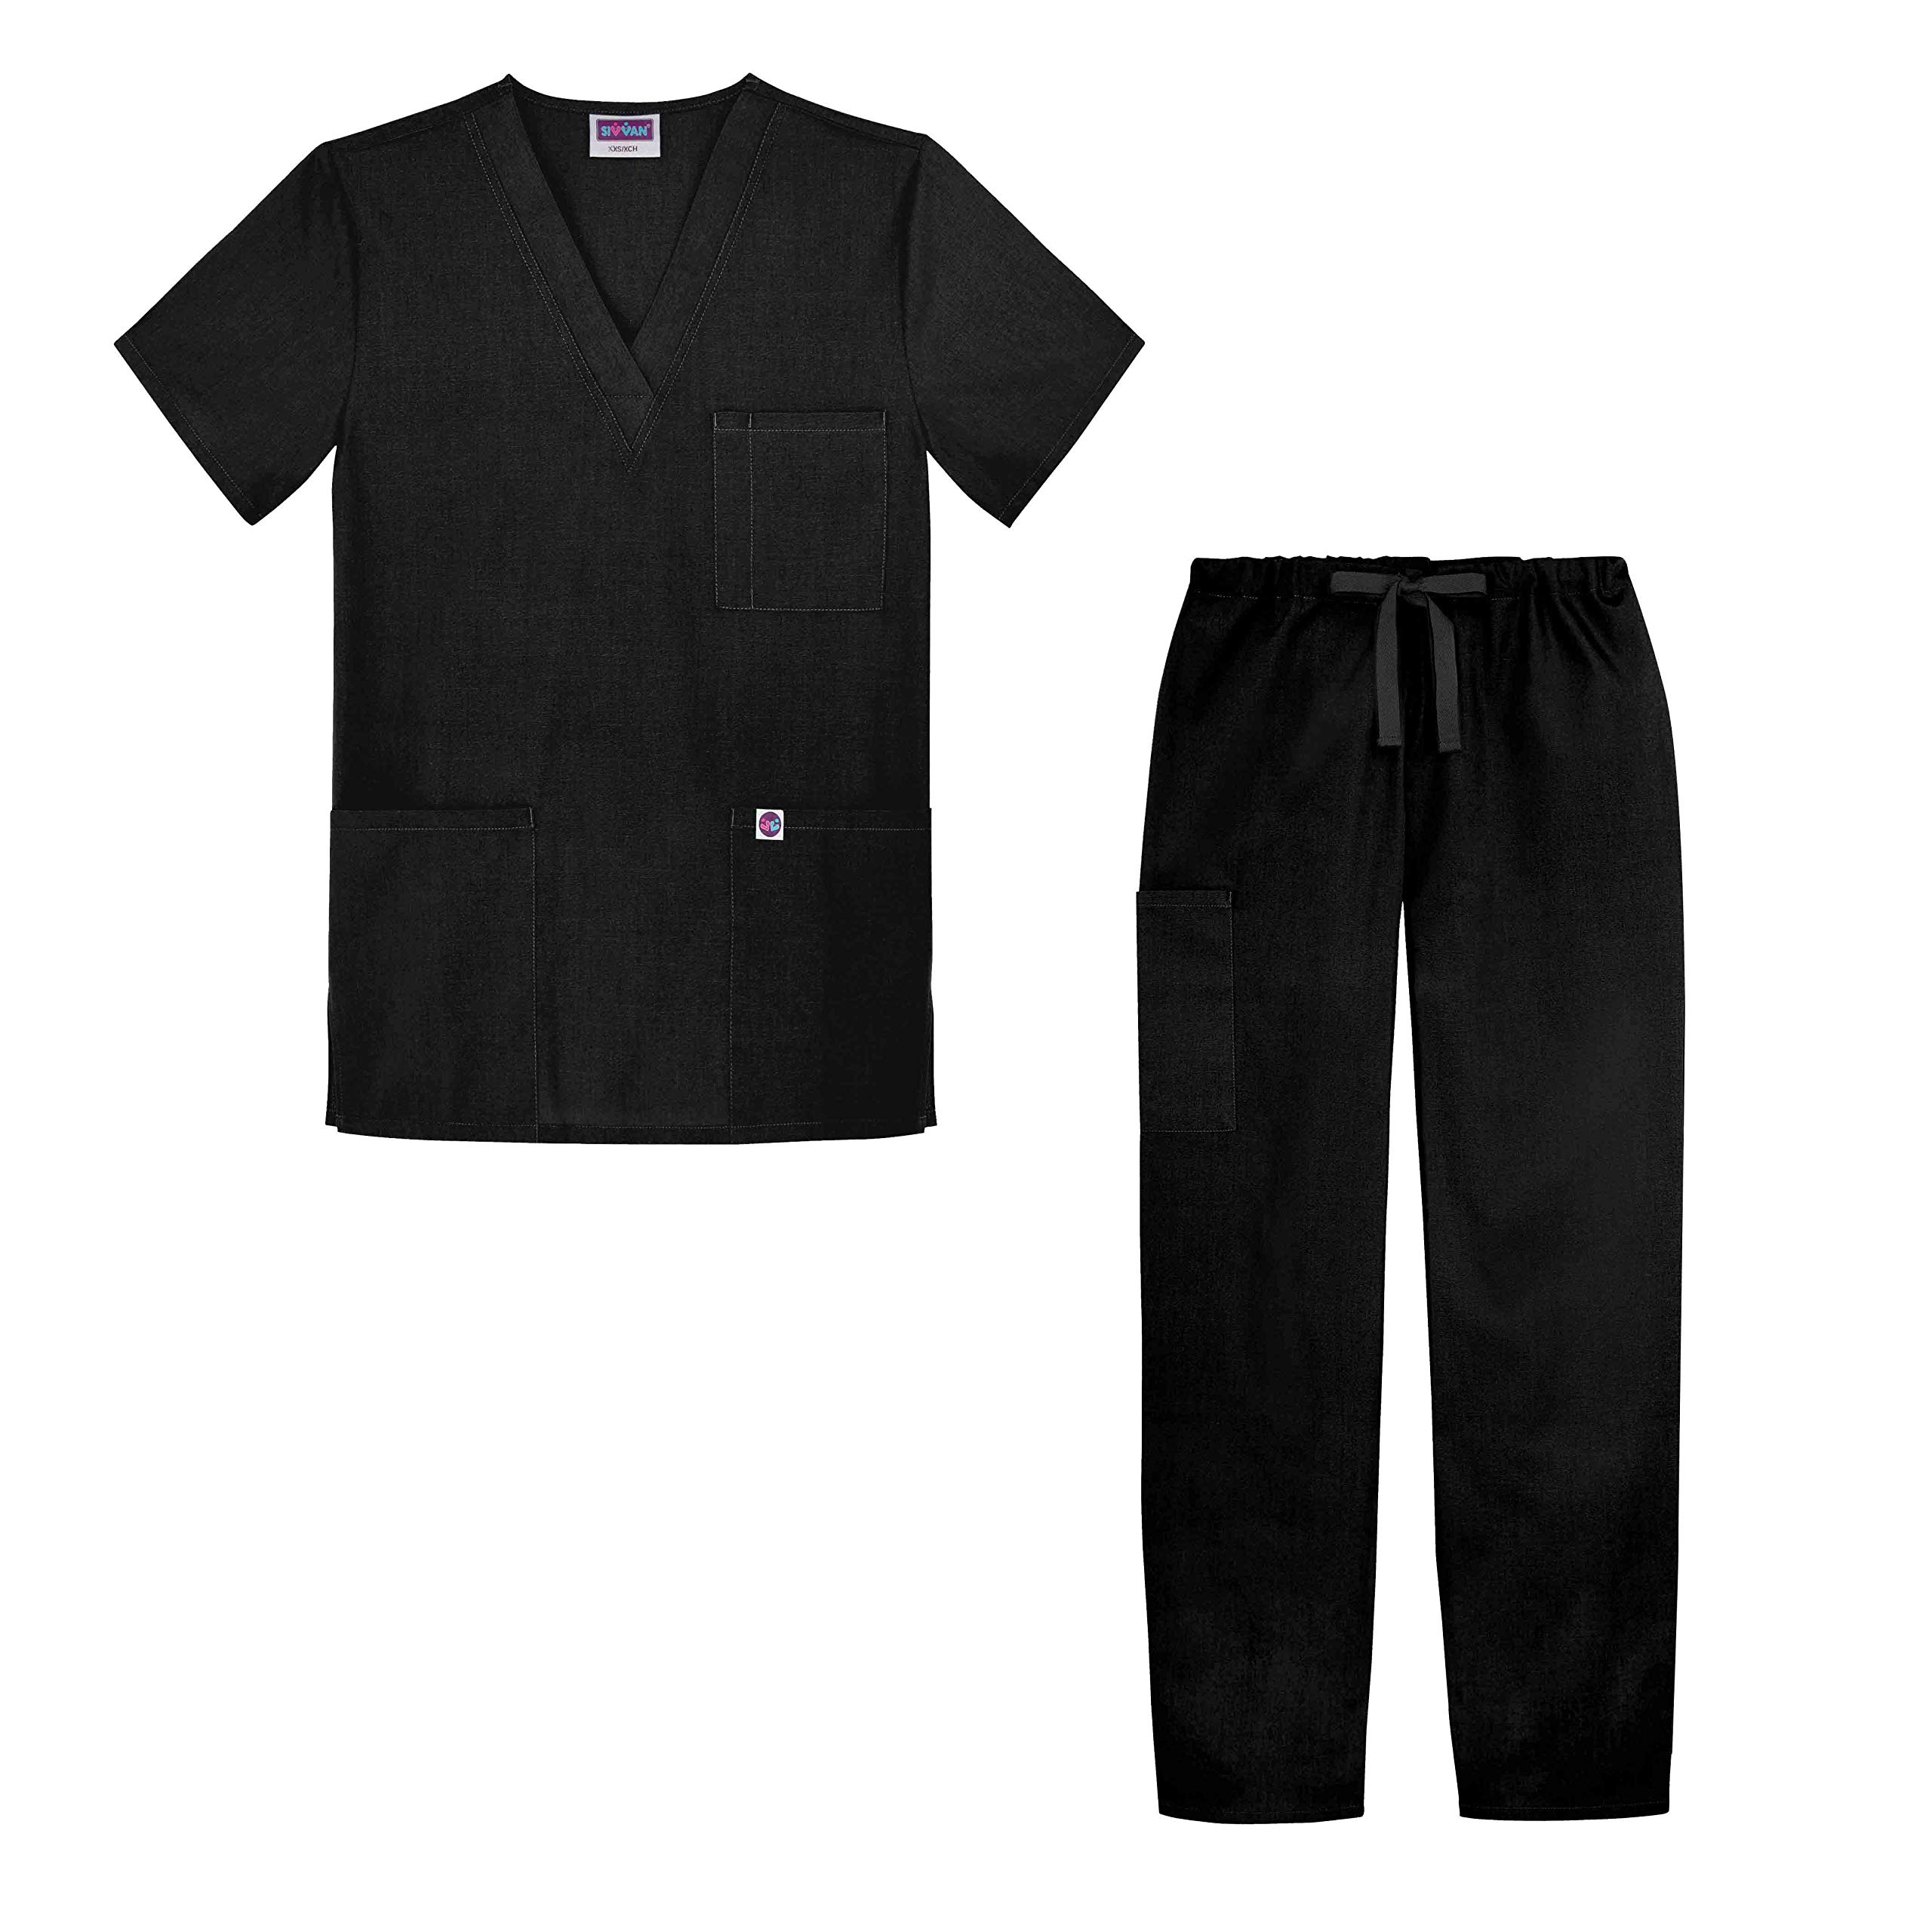 Sivvan Unisex Classic Scrub Set V-Neck Top/Drawstring Pants (Available in 12 Solid Colors) - S8400 - Black - 2X